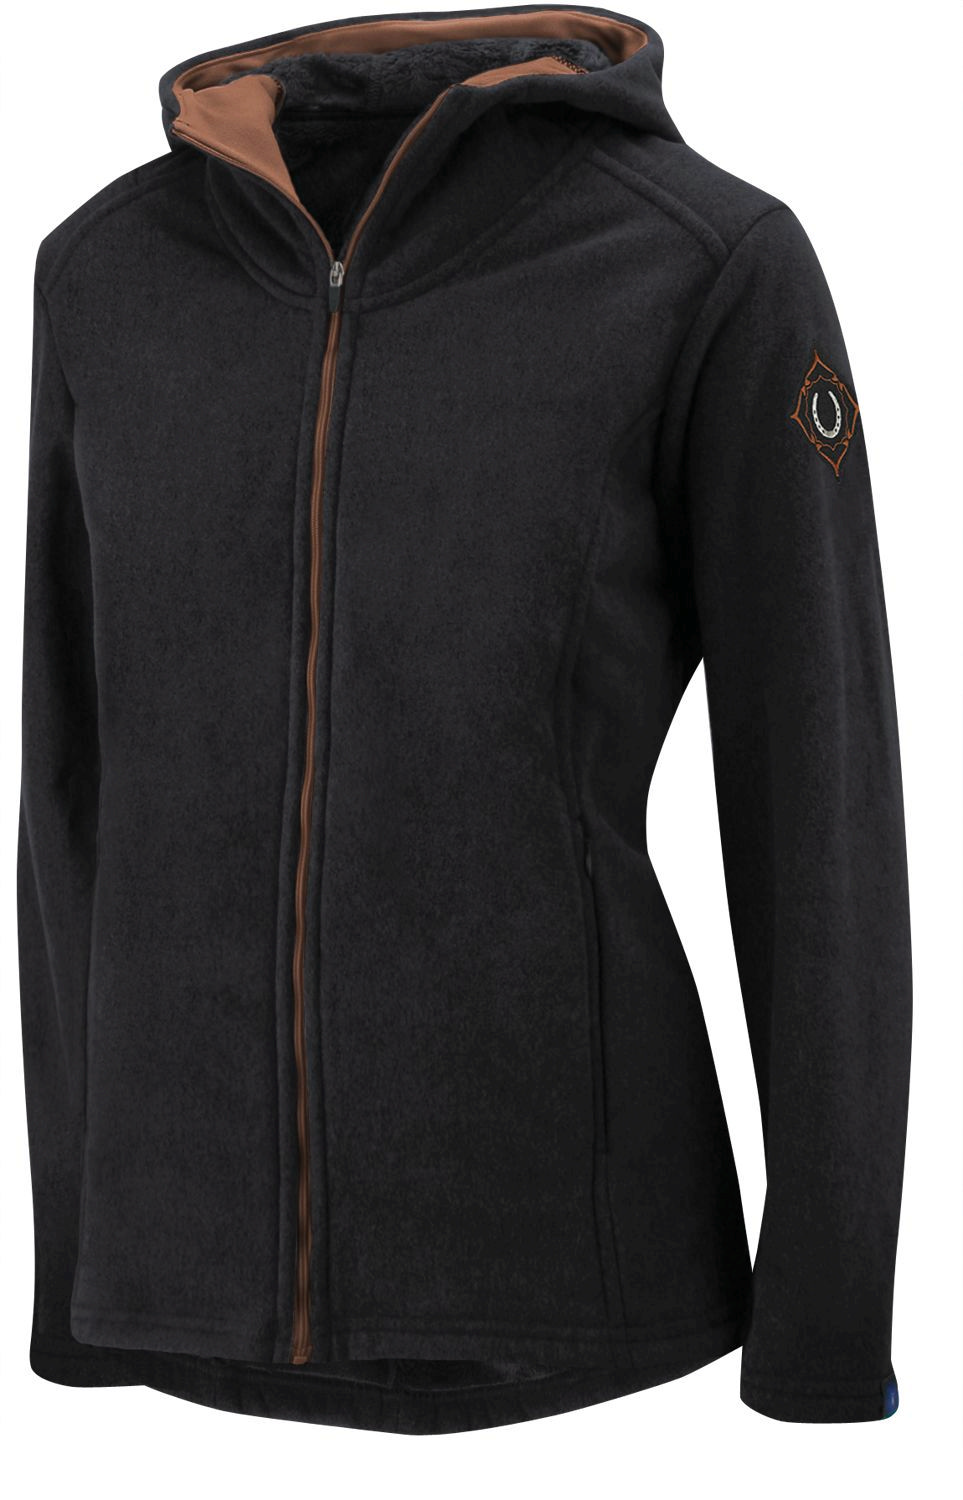 Irideon Ladies' Shetland Hooded Jacket